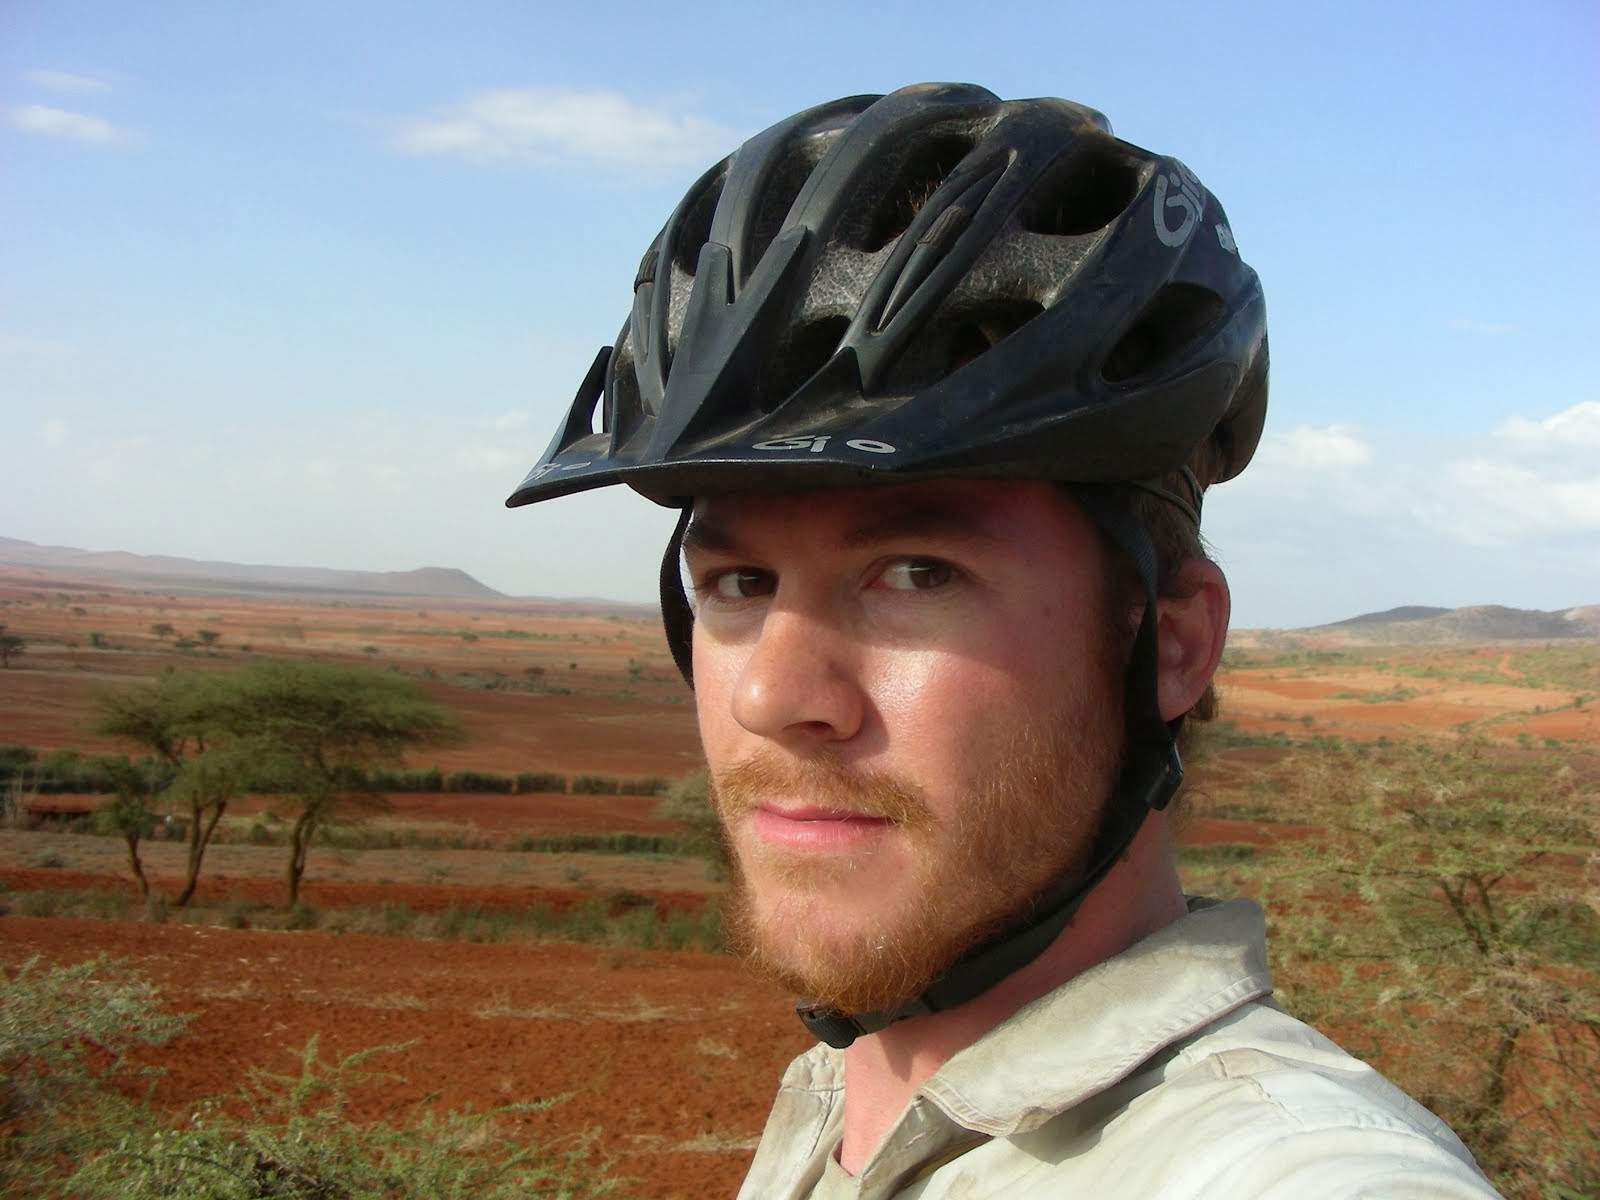 Kyle Henning cycling in Ethiopia, 2011: